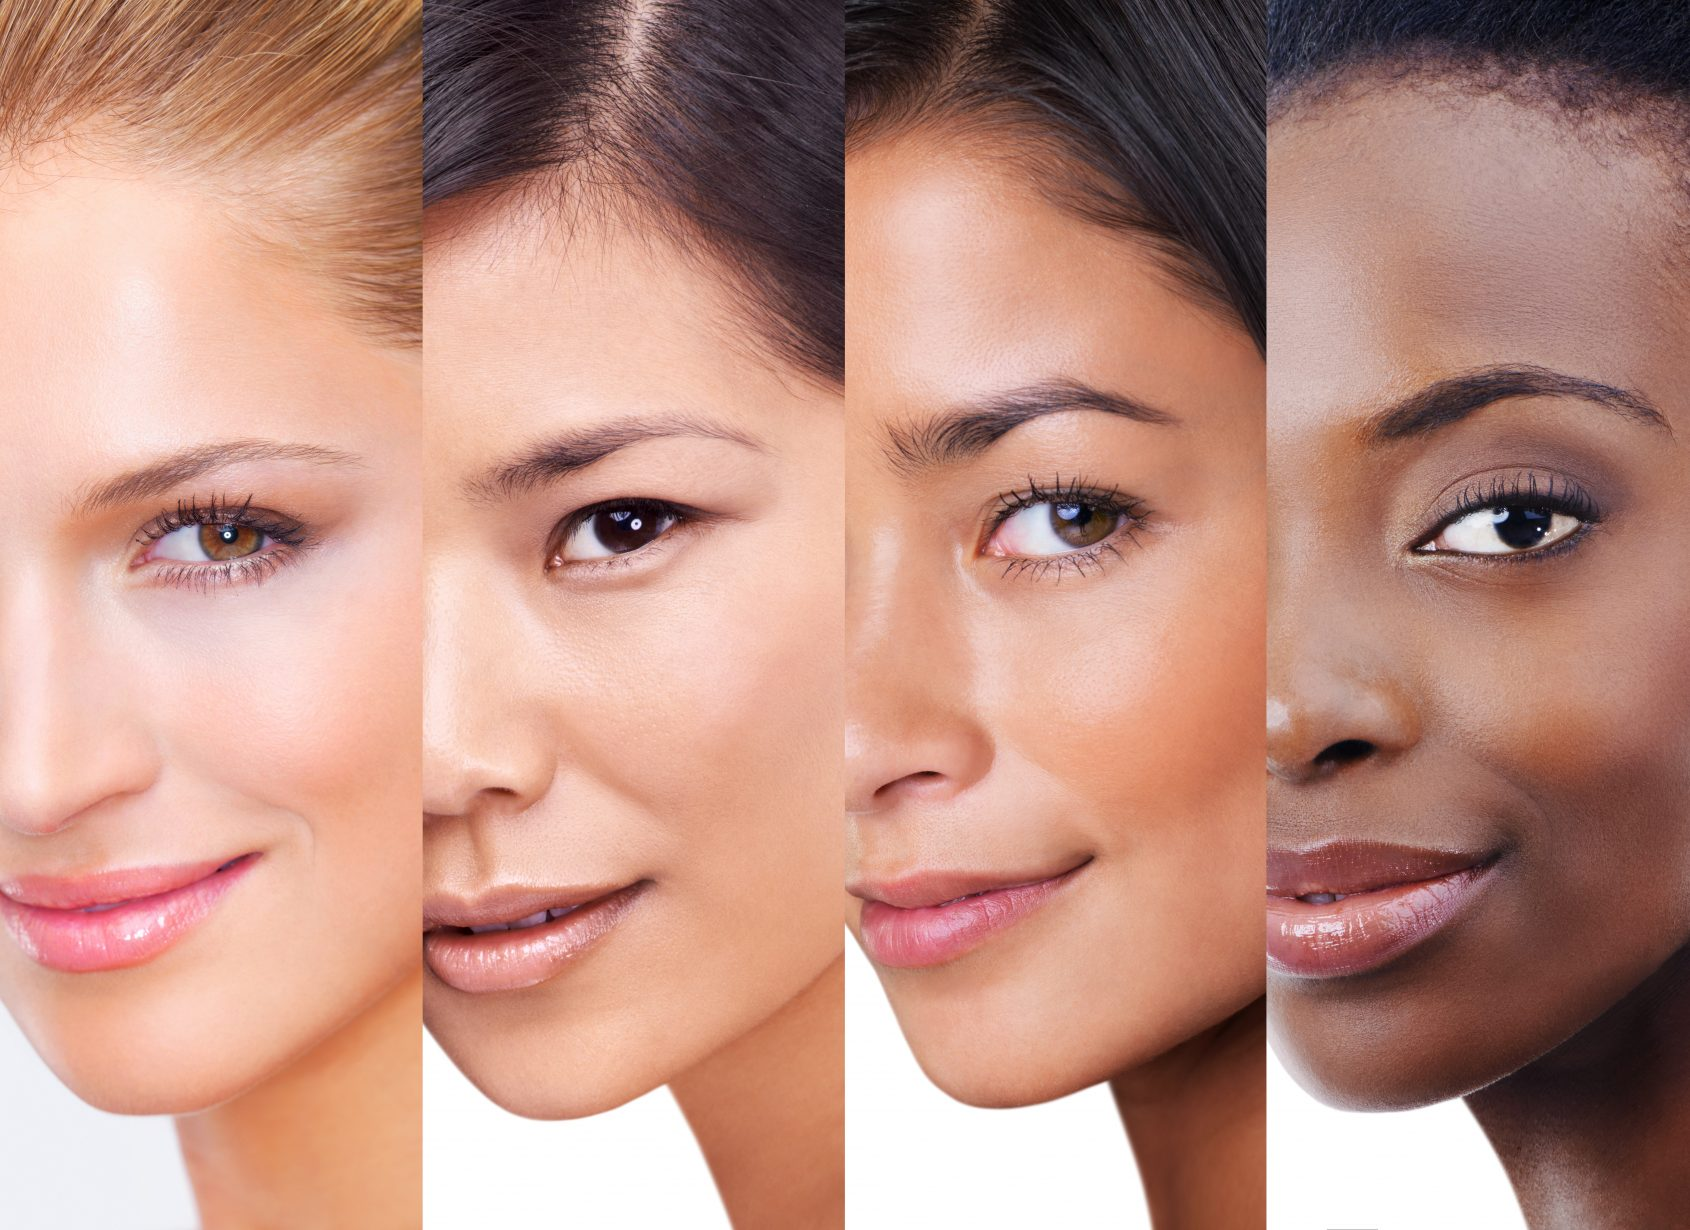 Shot of woman with different skintones superimposed over each other in the studio